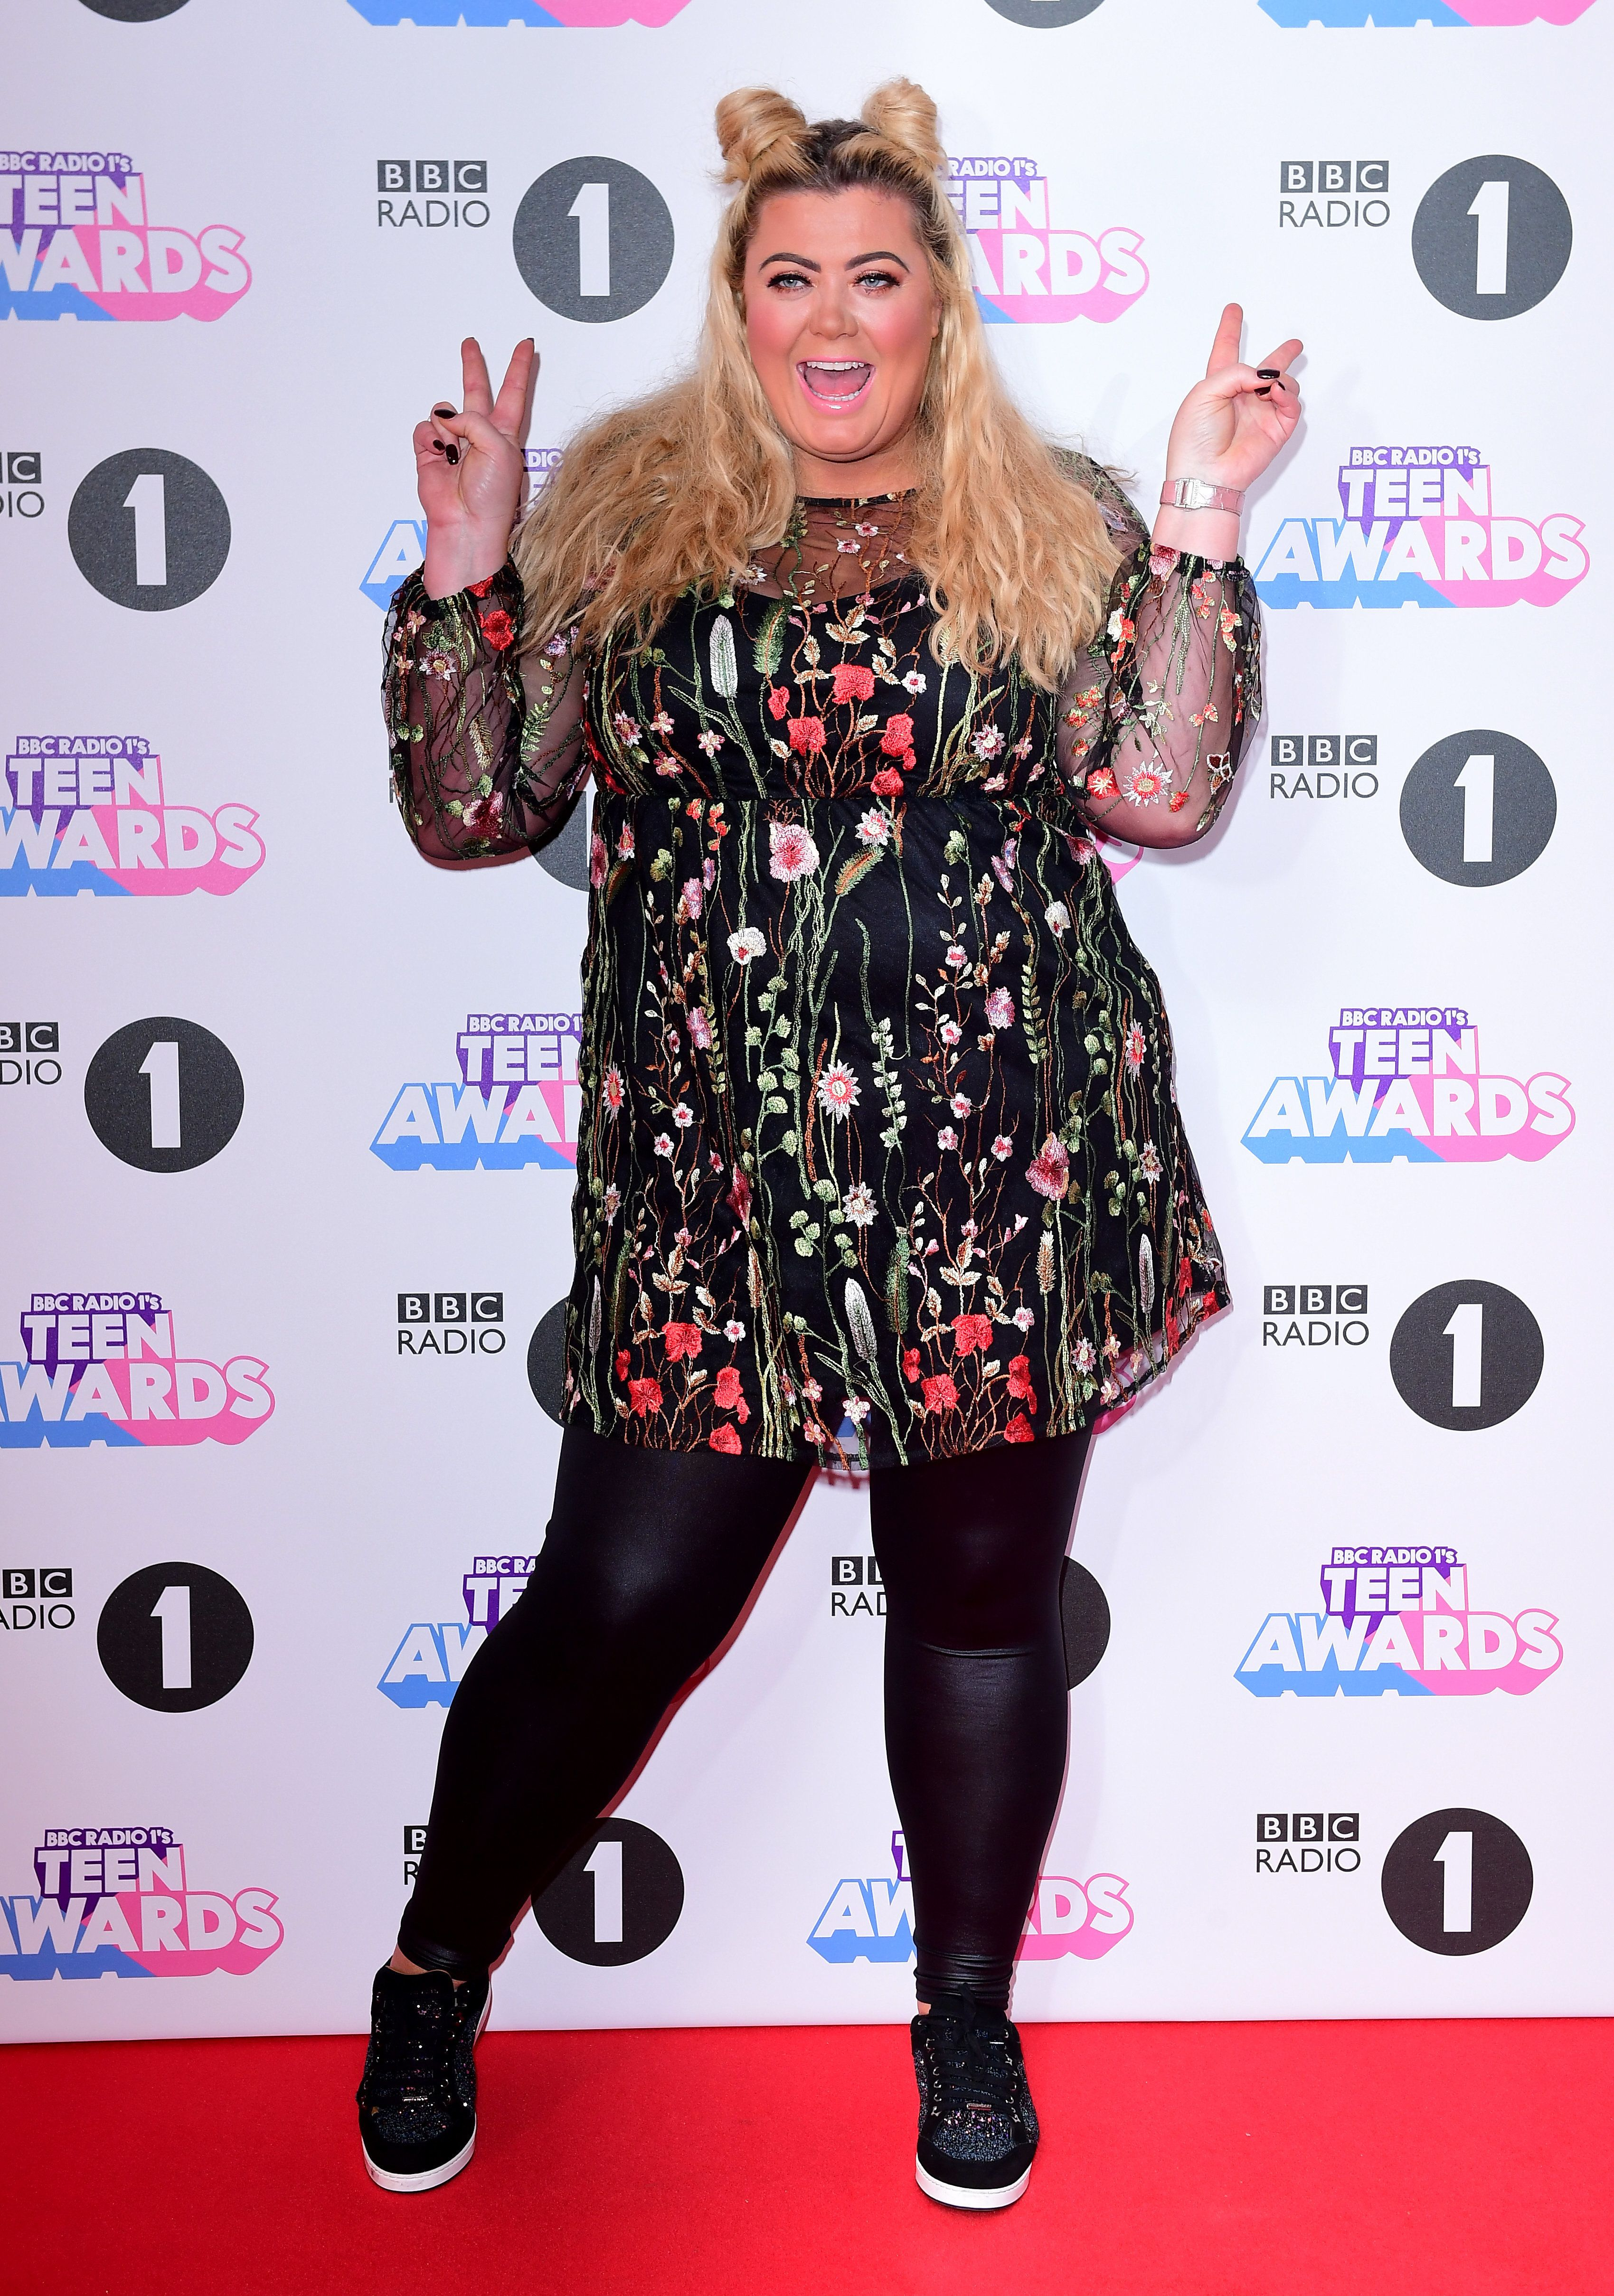 BBC Refutes Gemma Collins's Negligence Claims As She Takes Legal Advice Over Teen Awards